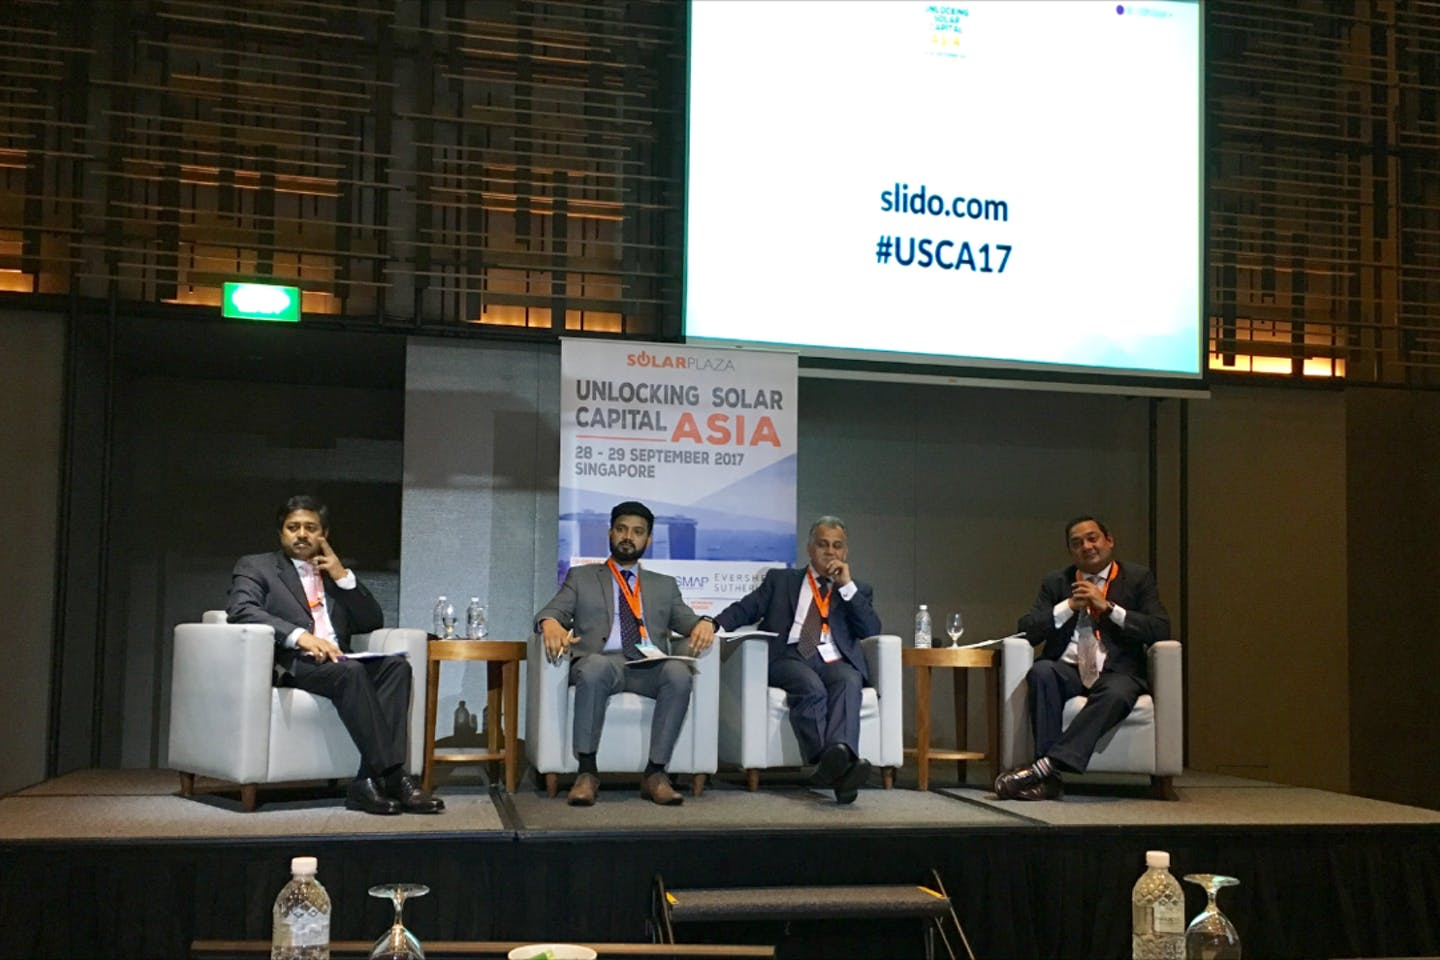 Subrata Barman (far left) of International Finance Corporation fields a heated question from the audience about the criteria for awarding loans at Unlocking Solar Capital Asia. Image: Eco-Business